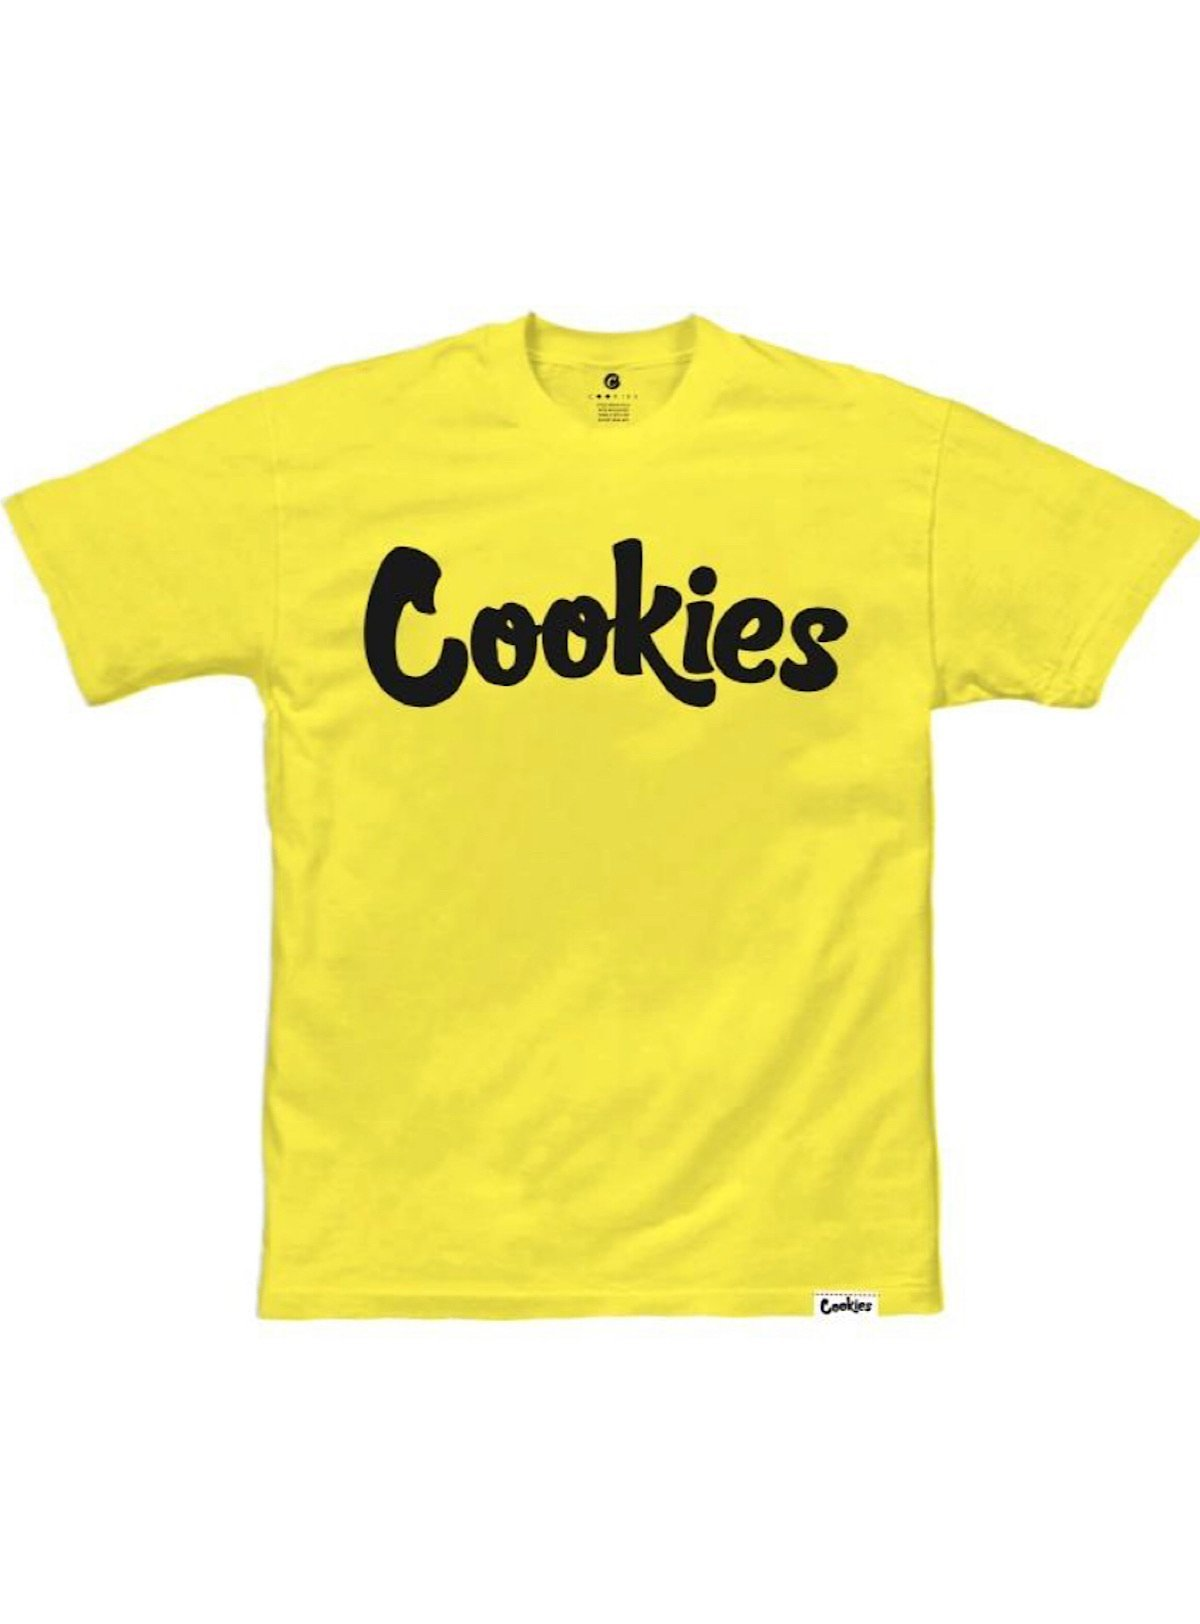 Cookies T-Shirt - Original - Yellow And Black